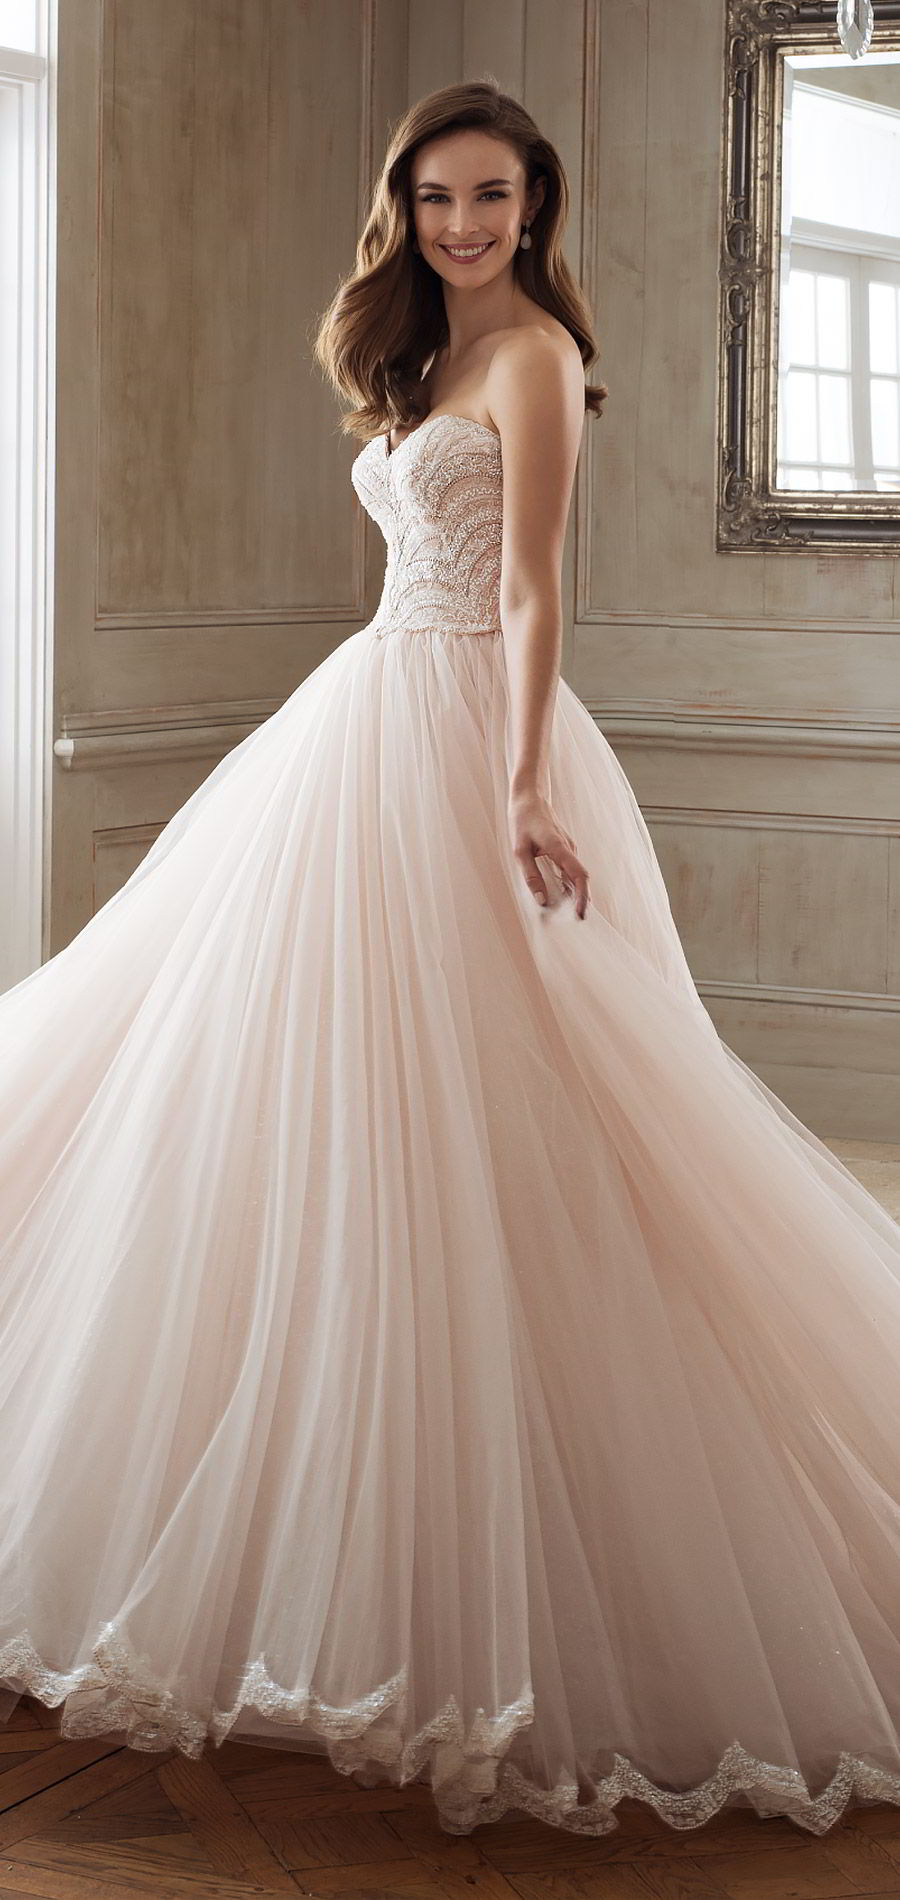 sophia tolli spring 2018 mon cheri bridals strapless sweetheart beaded lace bodice ball gown wedding dress (y11891 aella) mv chapel train blush princess romantic